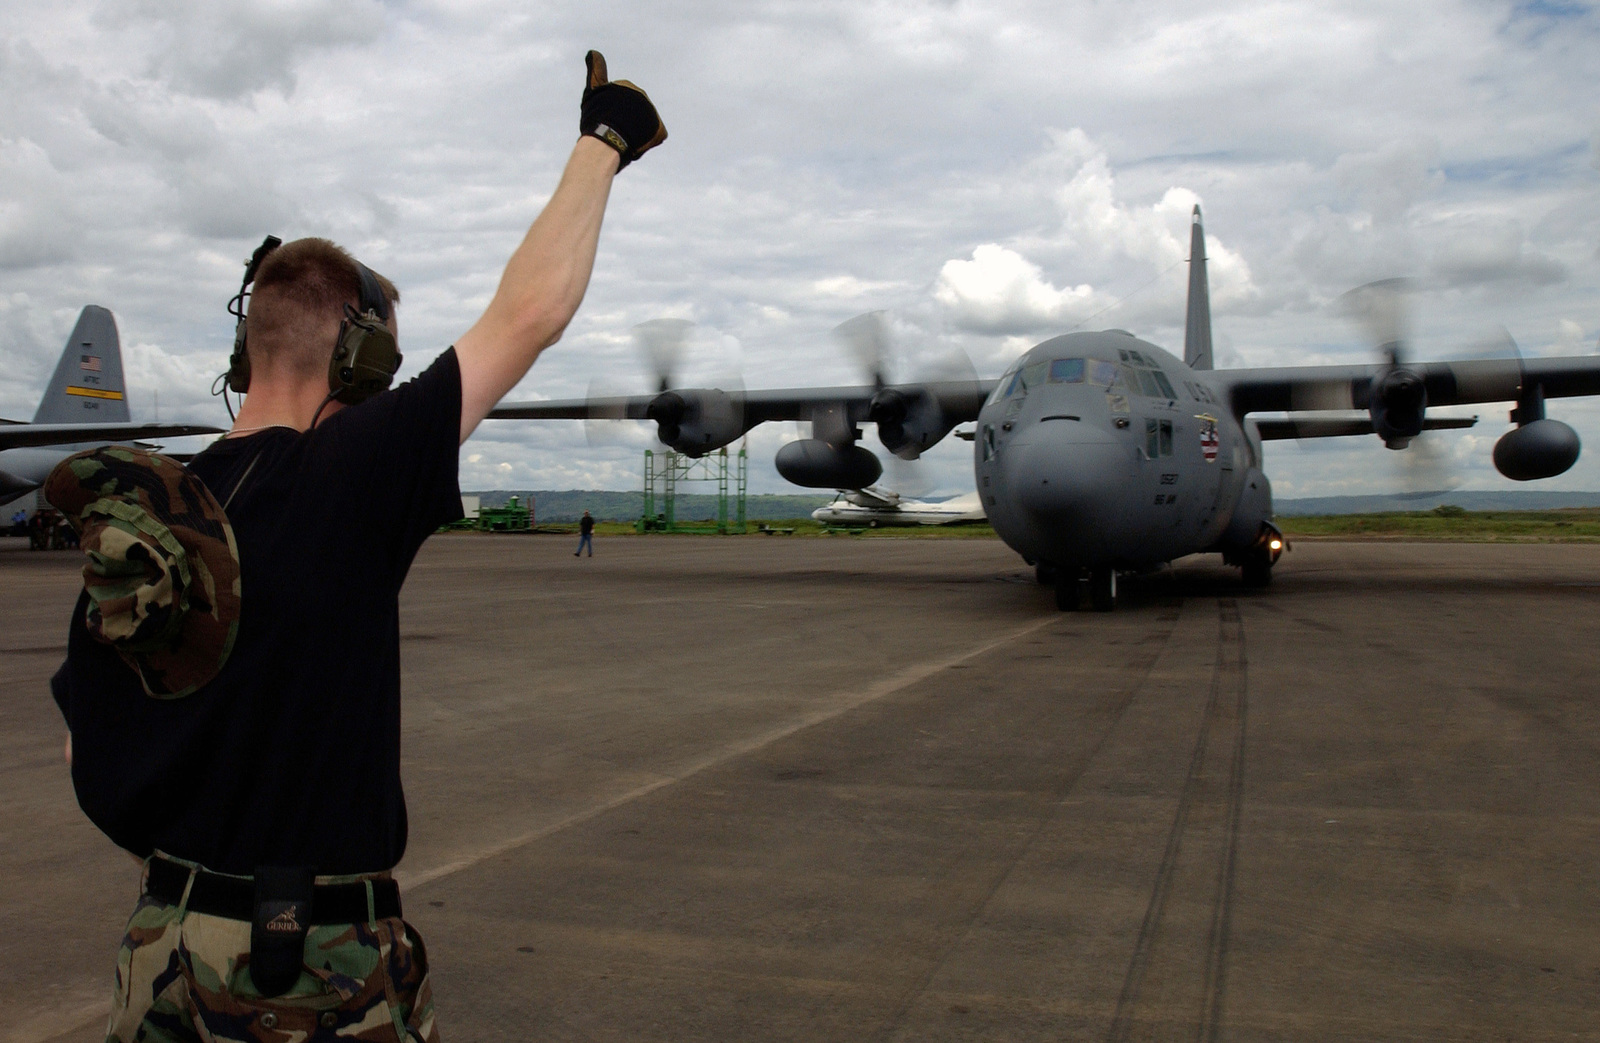 U.S. Air Force STAFF SGT. Justin Niederhofer, crew chief, 86th Airlift Maintenance Squadron, 86th Airlift Wing, assigned to the 322nd Air Expeditionary Group, marshals a U.S. Air Force C-130 Hercules cargo aircraft at the Kigali International Airport, Rwanda, in support of Operation Silverback Express, on Oct. 23, 2004.(U.S. Air Force PHOTO by STAFF SGT. Tony R. Tolley) (RELEASED)